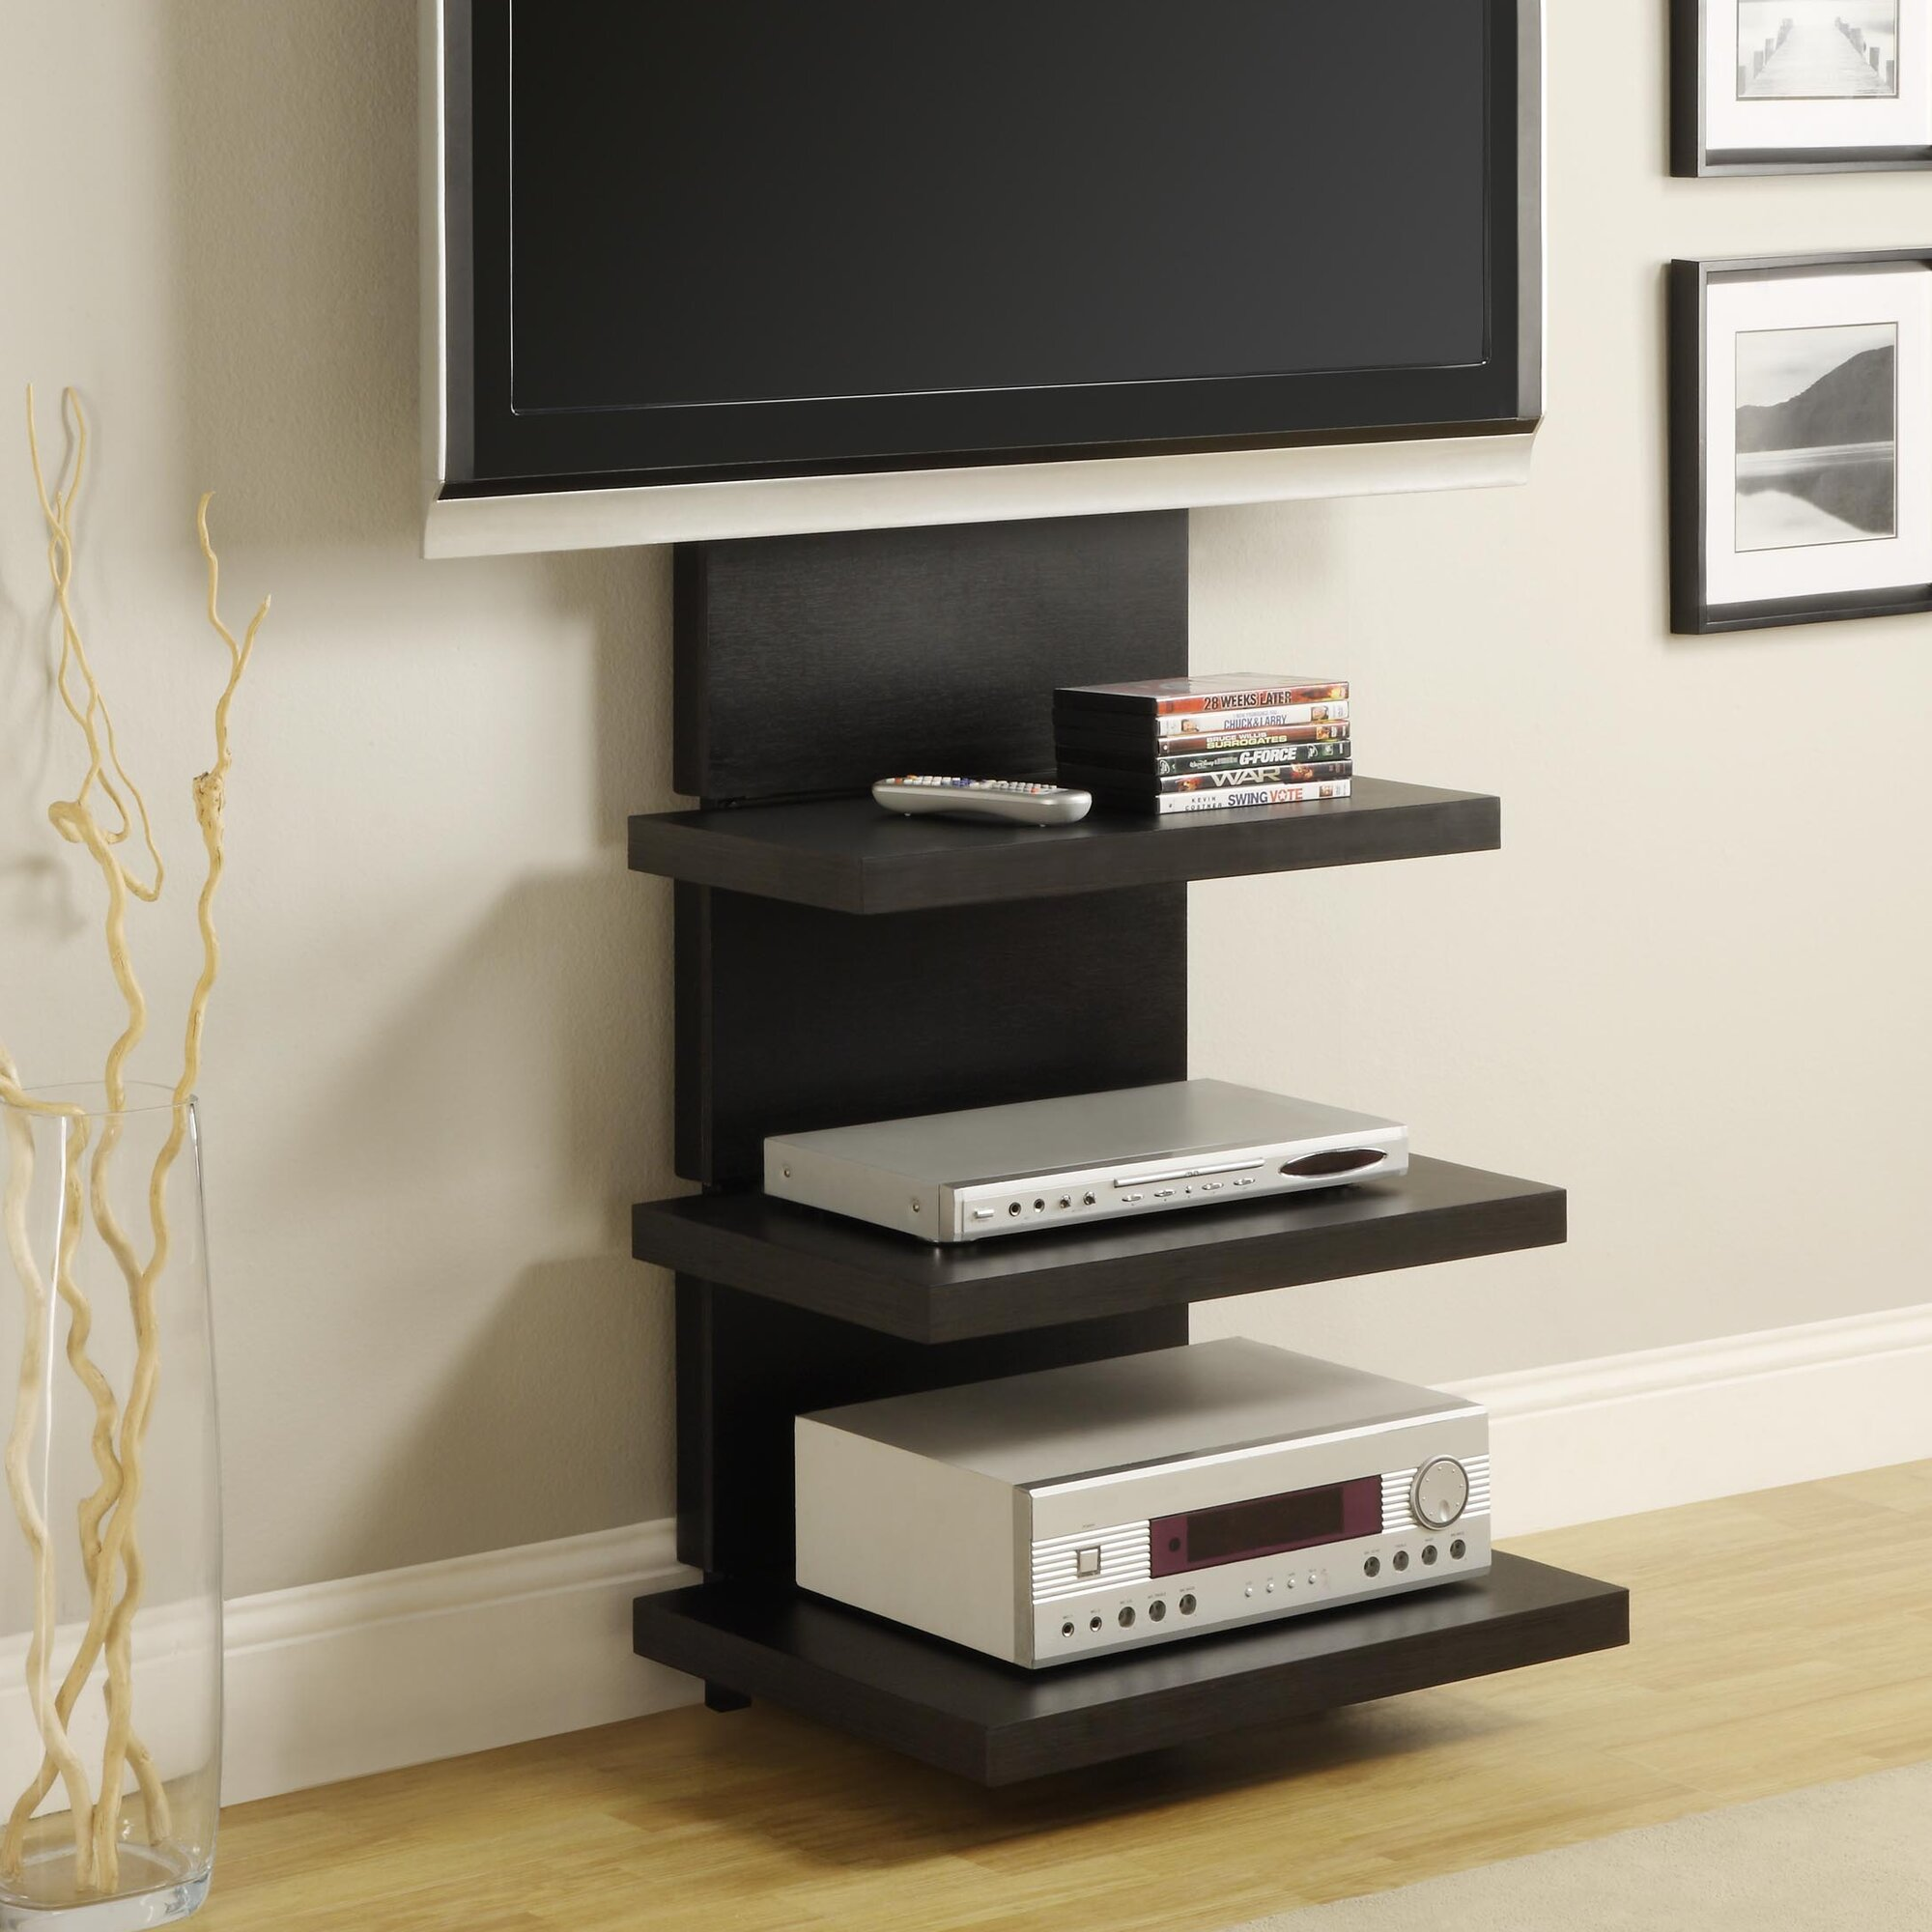 pole tv stand -  free standing tv pole photographs stylish ddnspexcelinfo